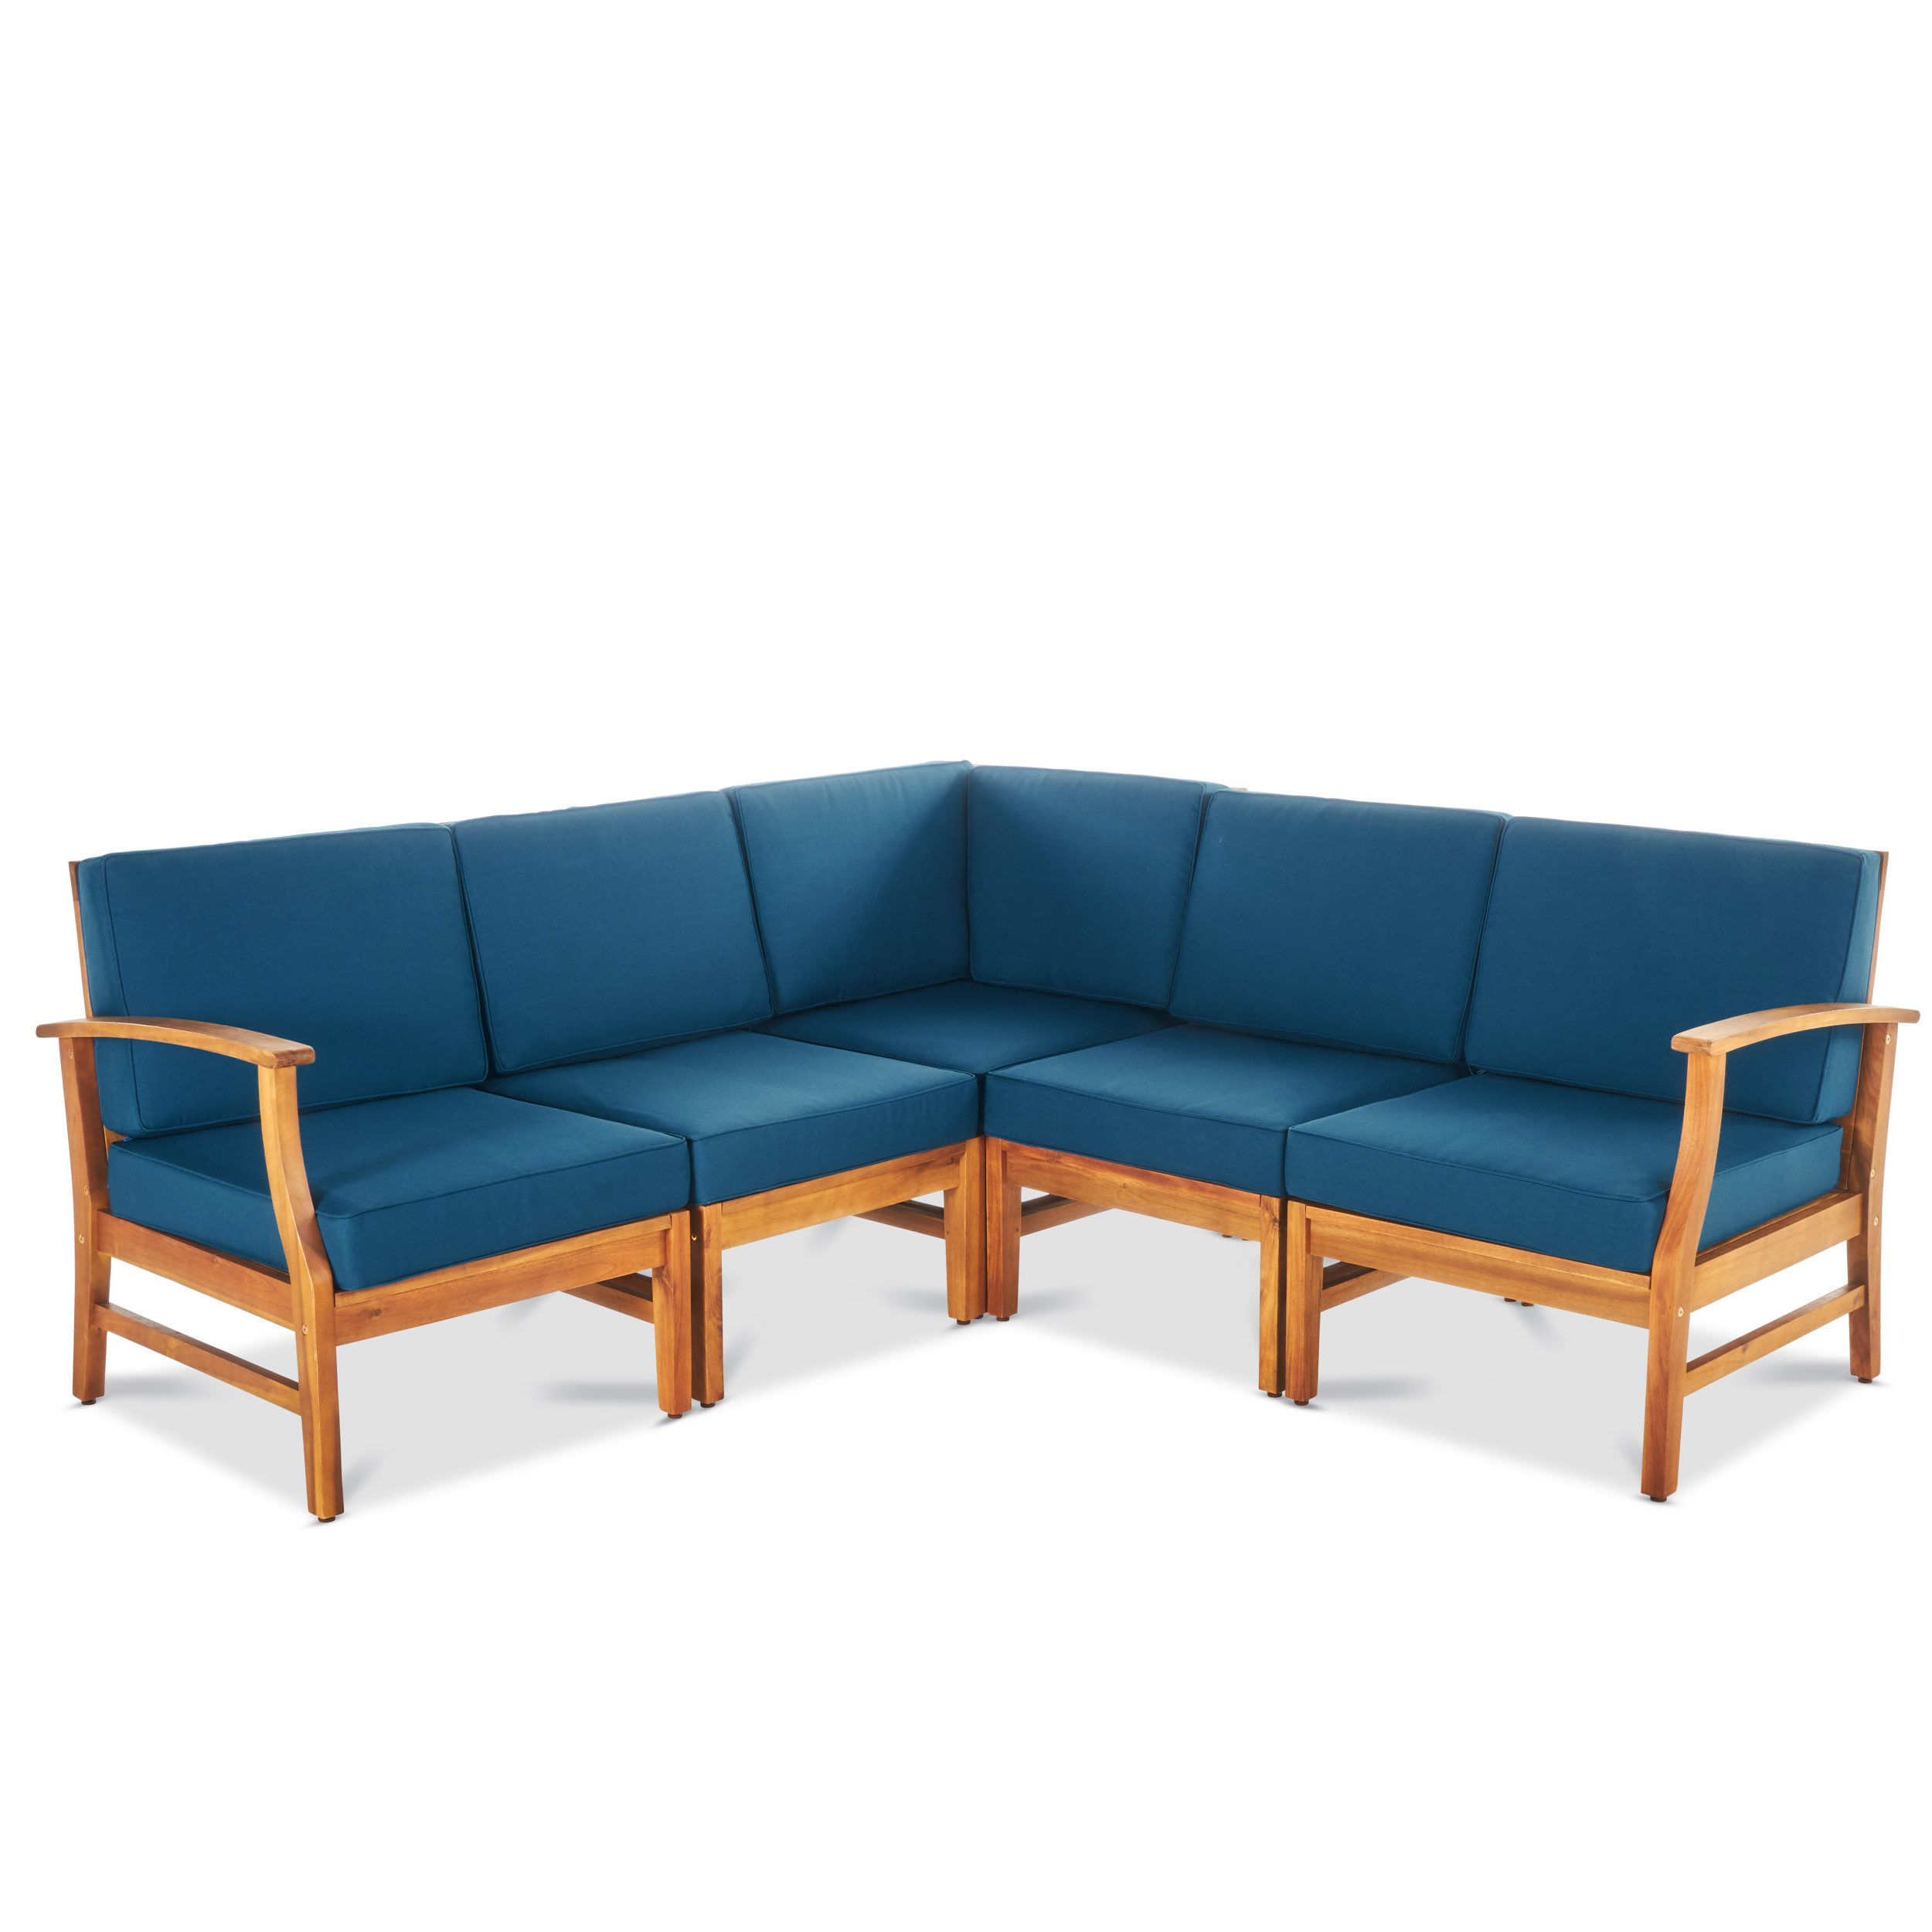 Antonia Teak Patio Sectional With Cushions Regarding Most Current Antonia Teak Patio Sectionals With Cushions (View 1 of 25)